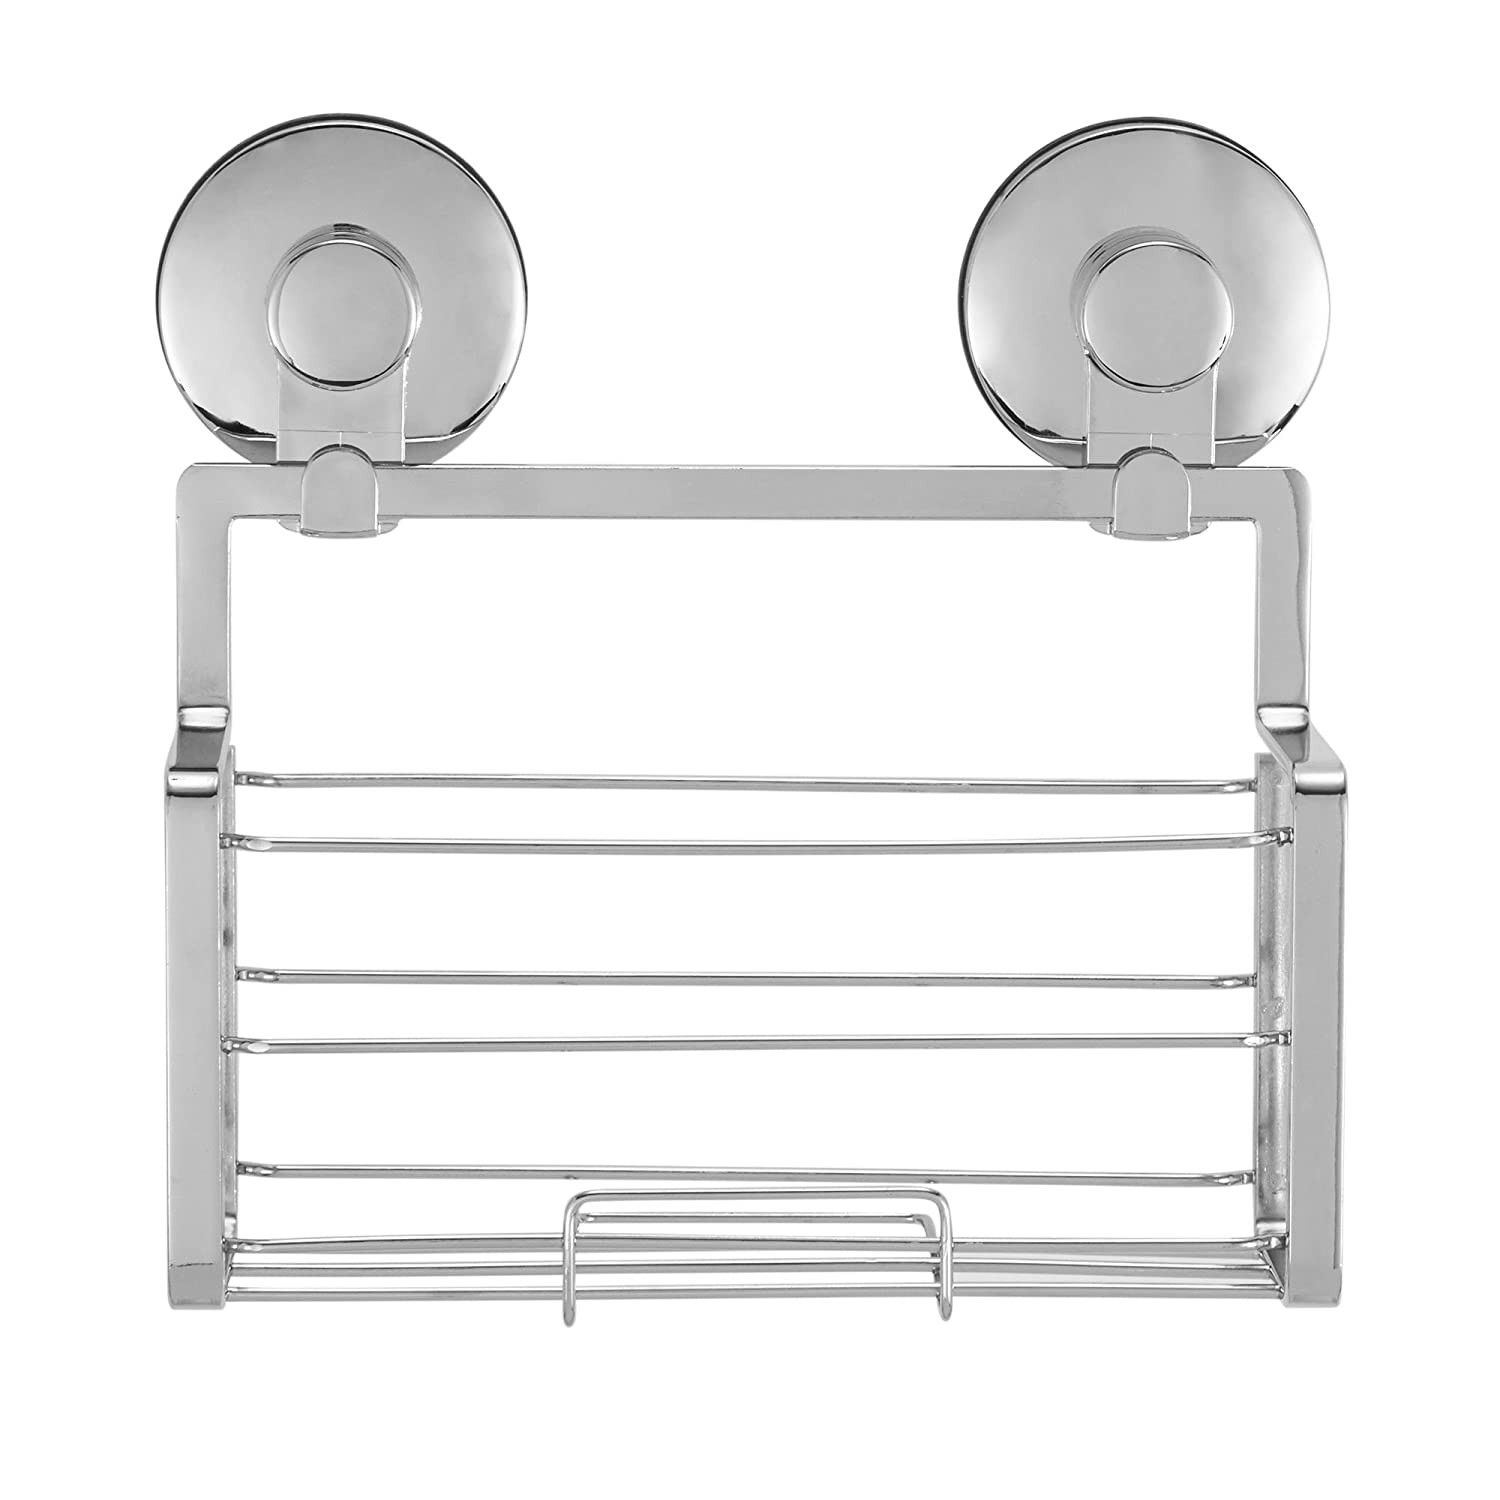 Amazon.com: Everloc Solutions Chrome Suction Cup Shower Caddy: Home ...